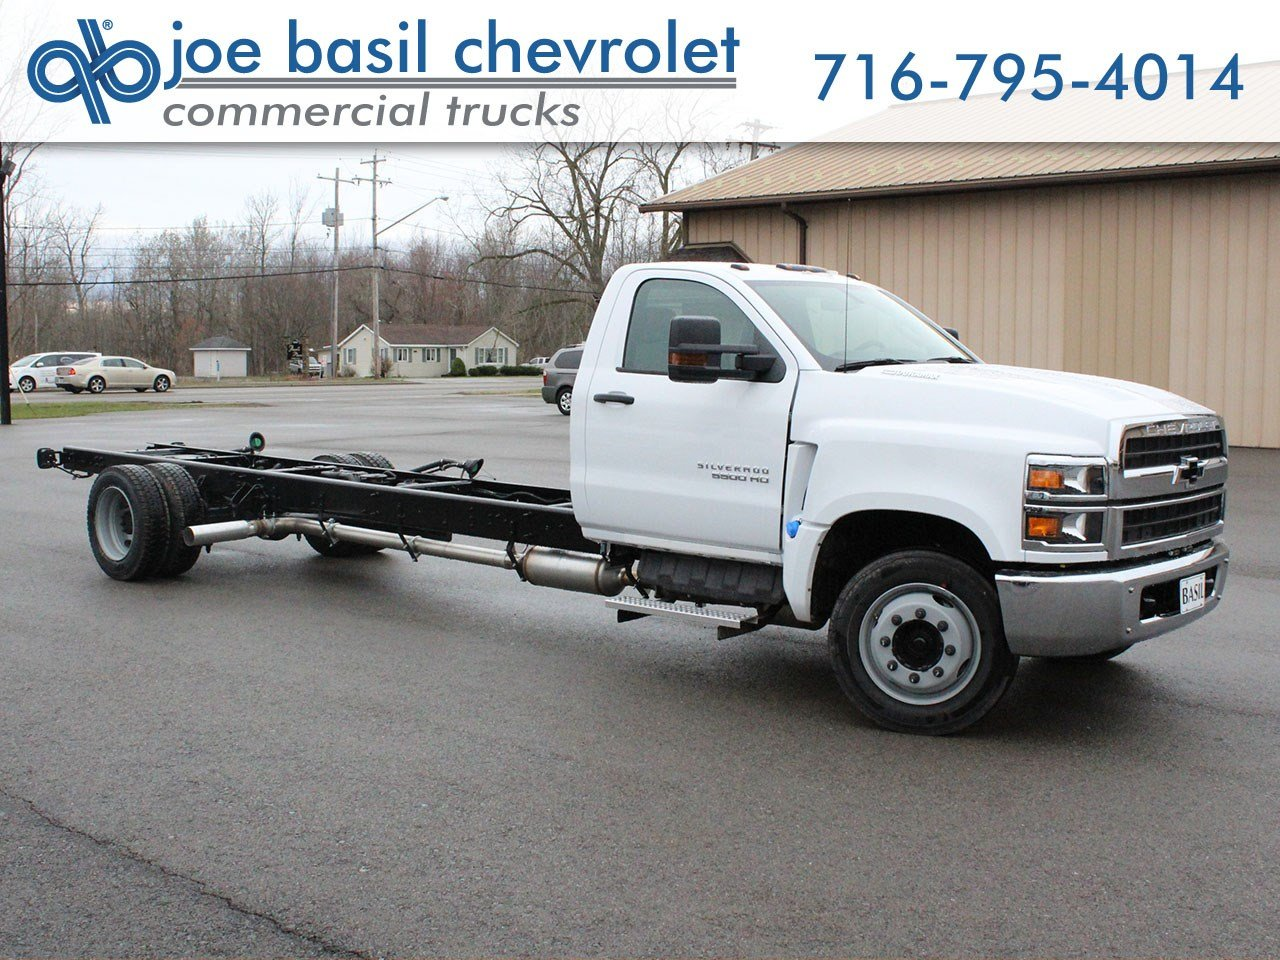 2bd32657a26f46 New 2019 Chevrolet Silverado MD Regular Cab Chassis-Cab in Depew ...